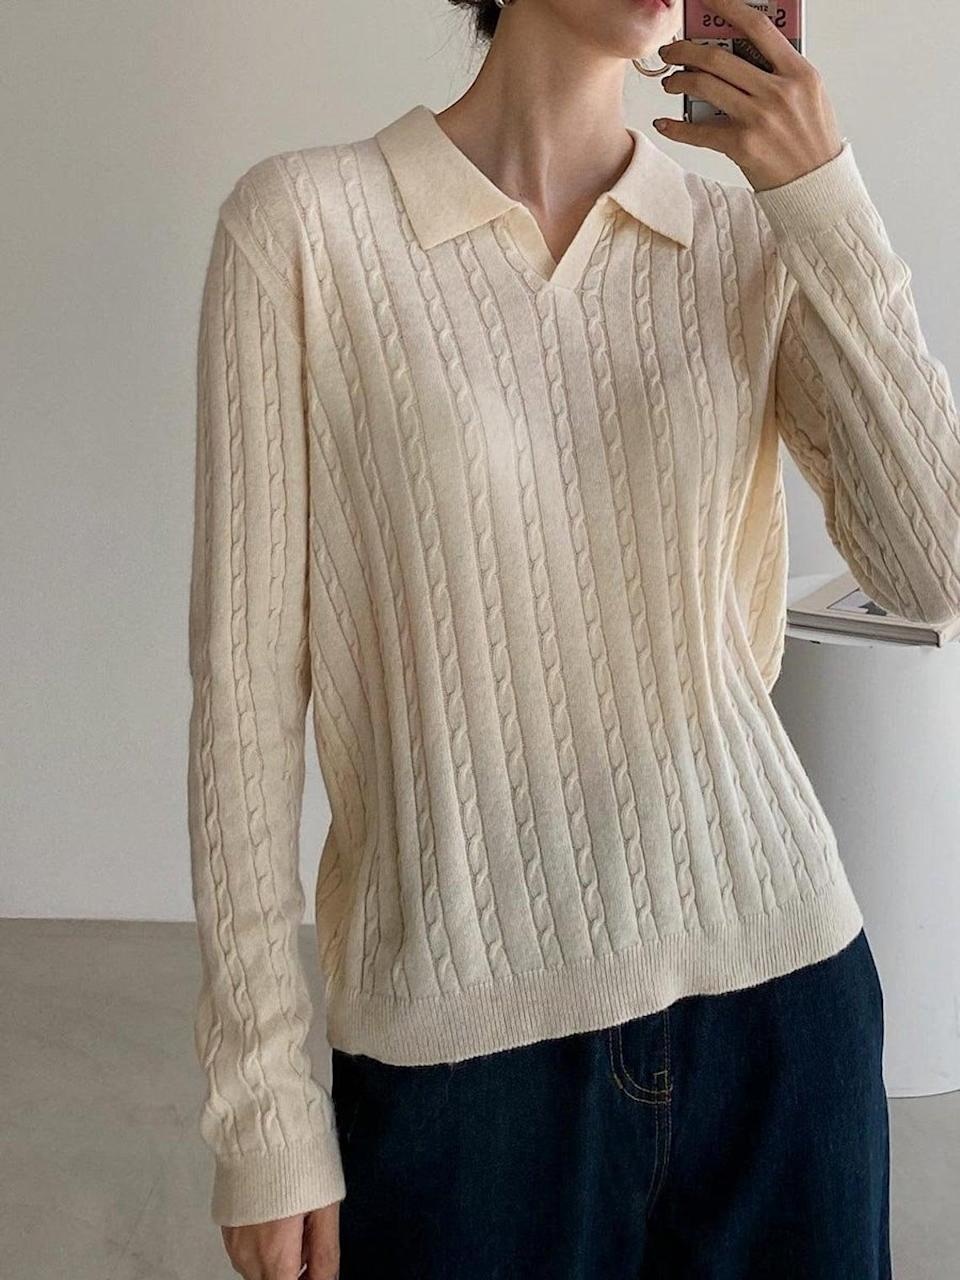 """<br><br><strong>Obvvis</strong> Cashmere and Wool-Blend Cable Knit Polo Top, $, available at <a href=""""https://www.etsy.com/uk/listing/871961440/cashmere-and-wool-blend-cable-knit-polo?"""" rel=""""nofollow noopener"""" target=""""_blank"""" data-ylk=""""slk:Etsy"""" class=""""link rapid-noclick-resp"""">Etsy</a>"""